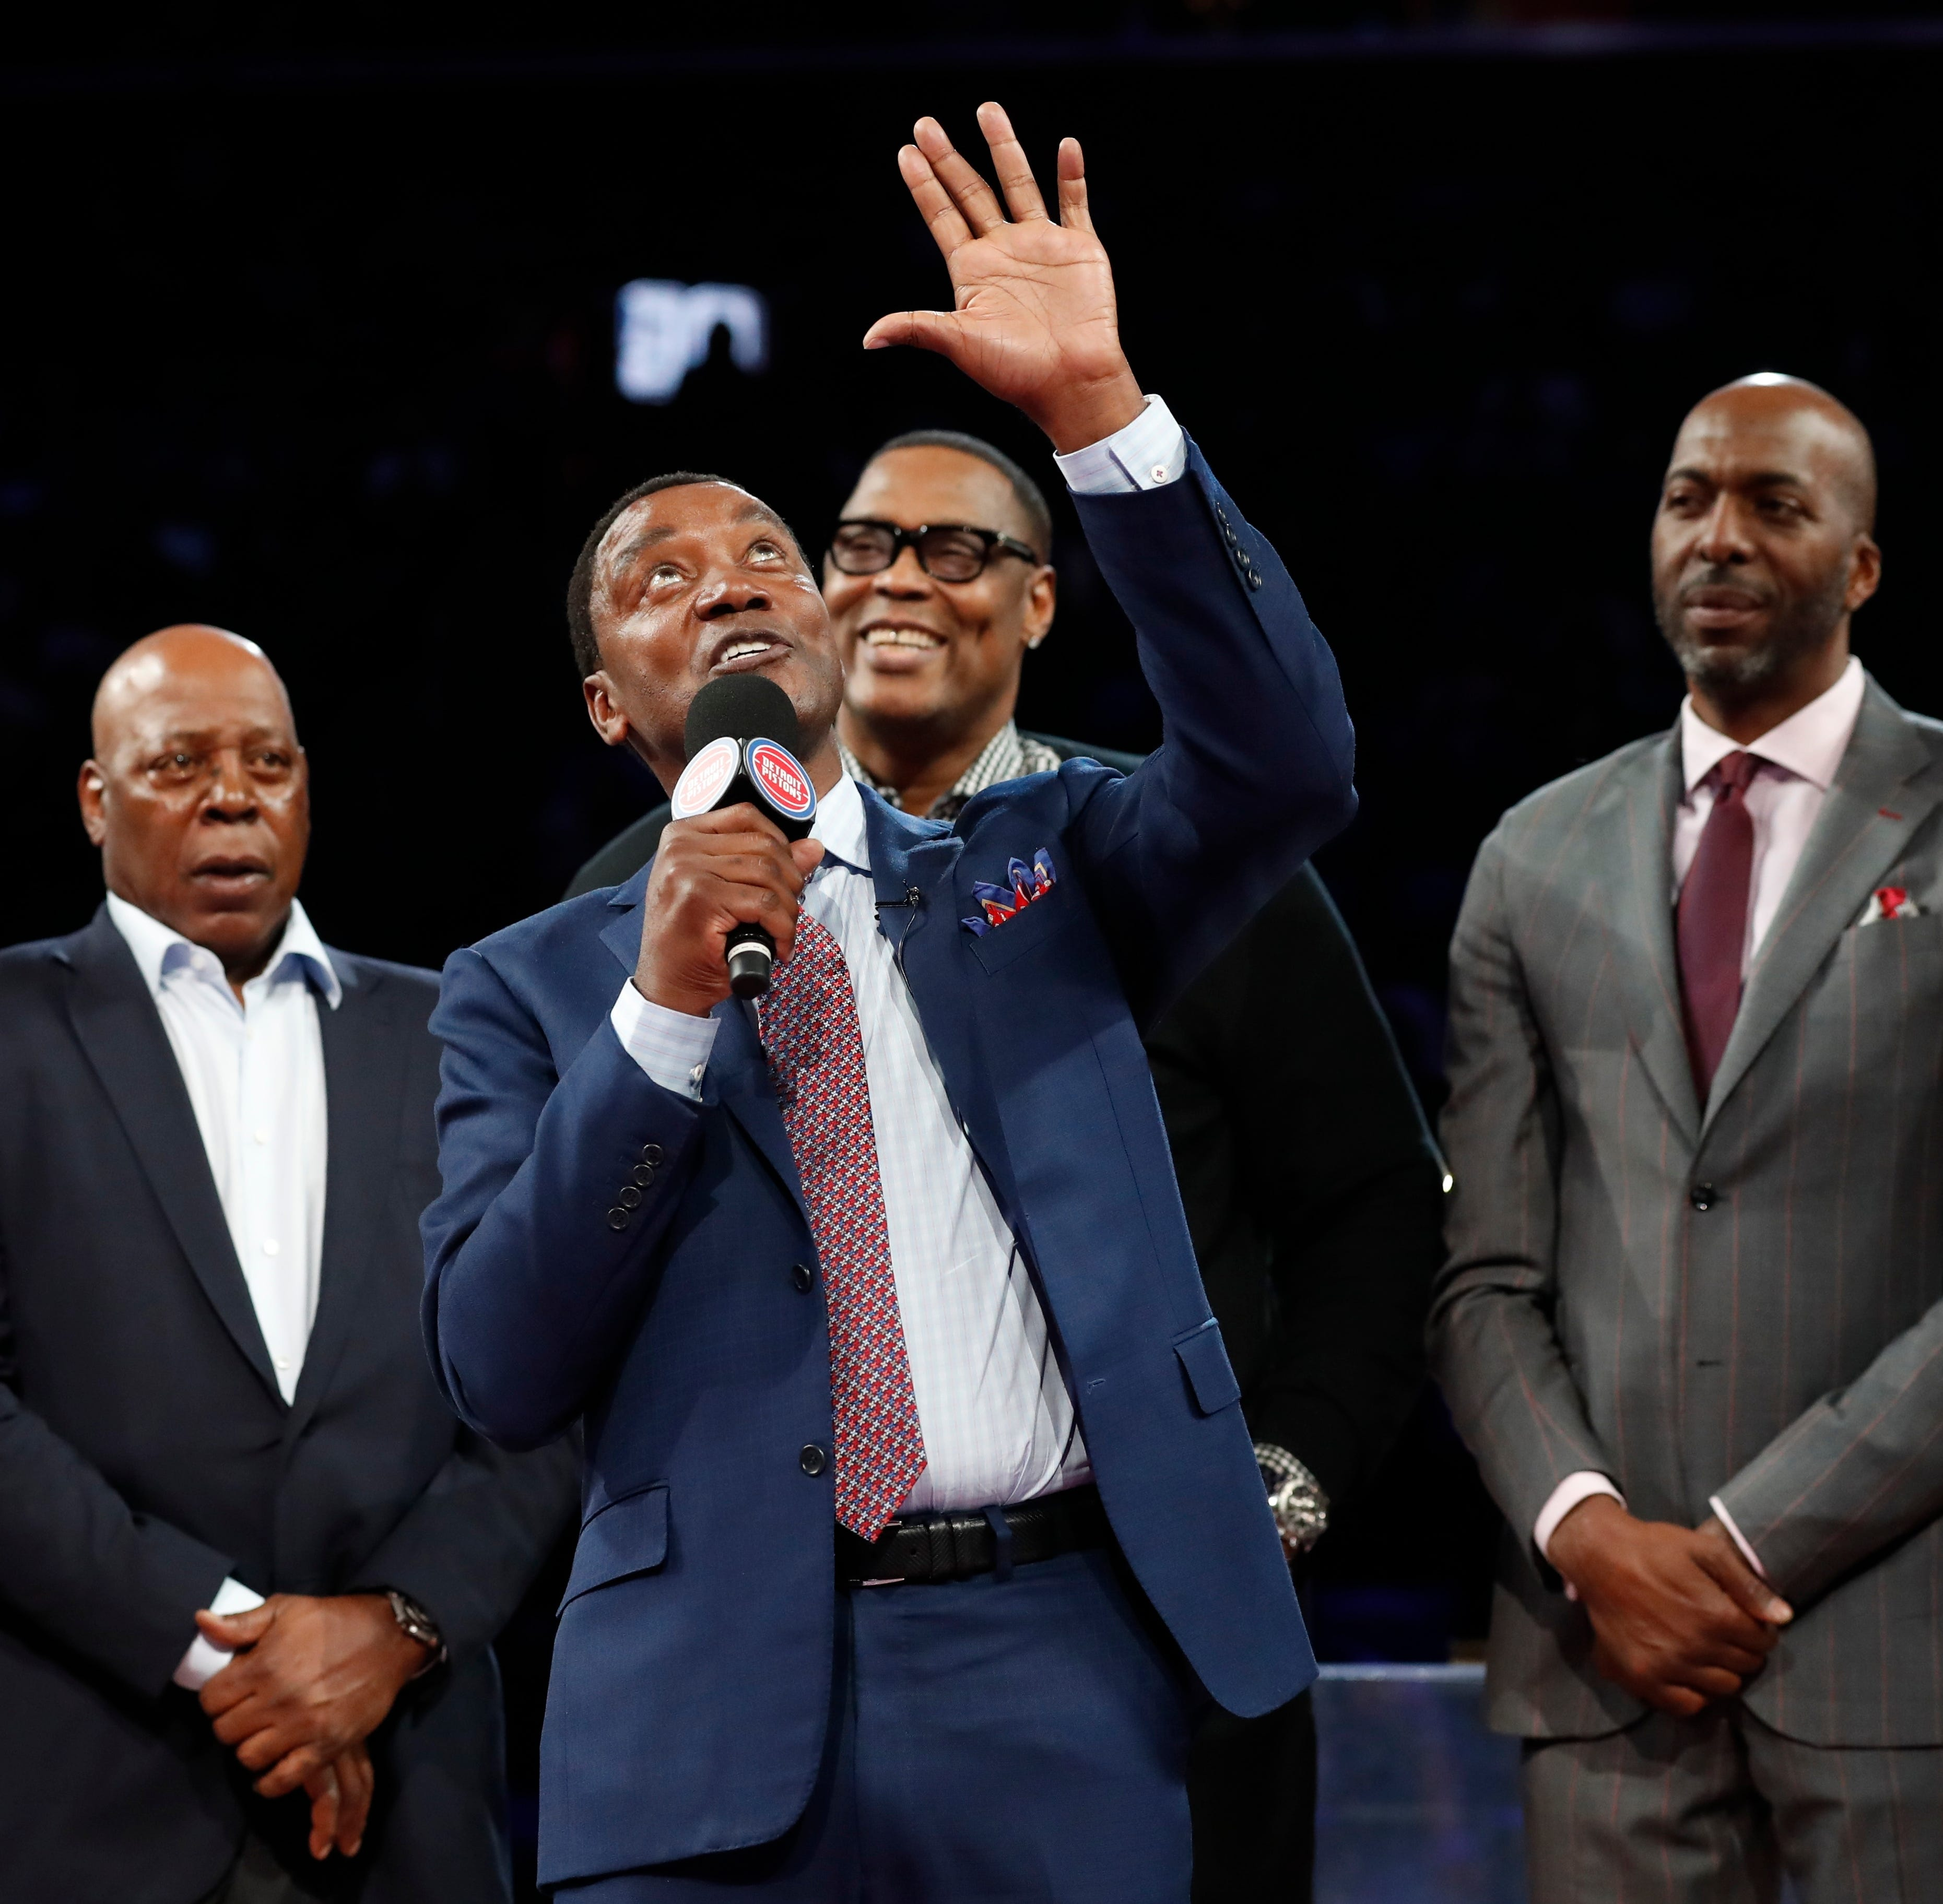 Pistons great Isiah Thomas lets guard down as fan adulation sweeps over 30-year Bad Boys reunion